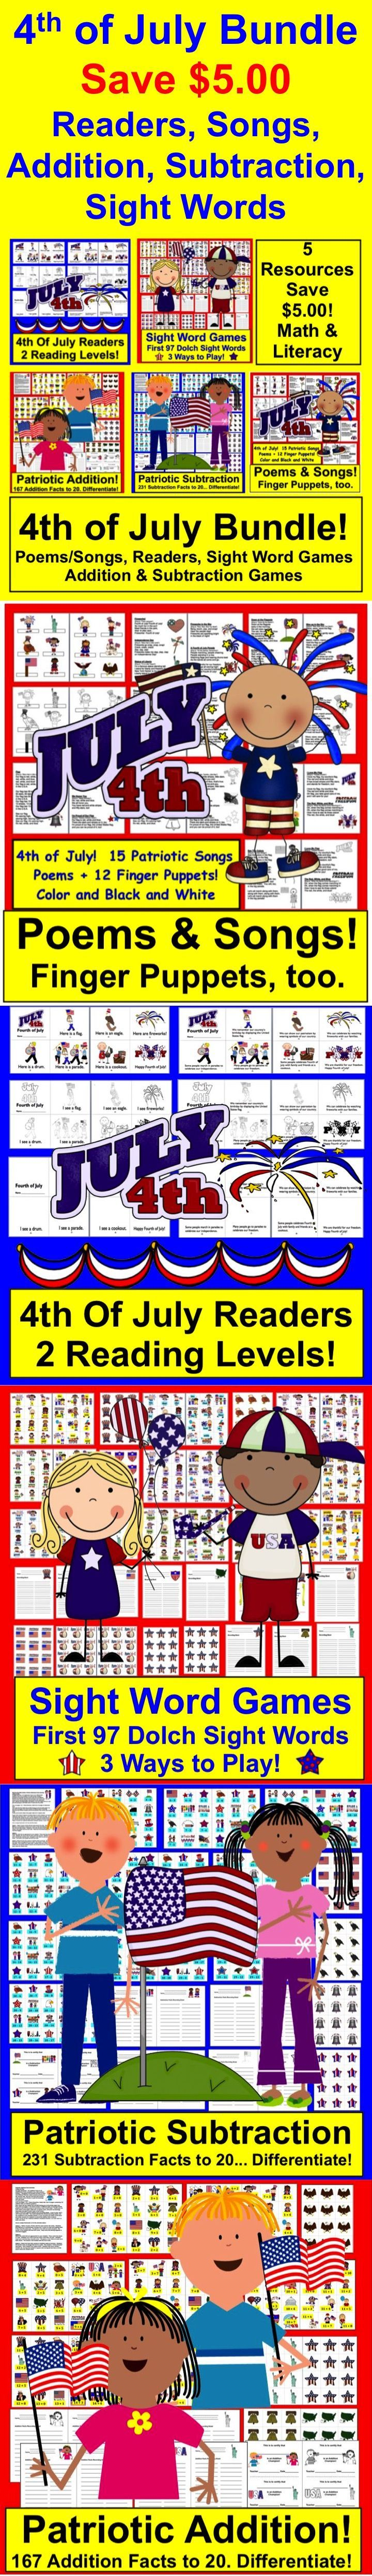 $ Fourth of July  BUNDLE VALUE! 5 Centers for the Fourth of July... Save $5.00!  ★ Save over $5.00 when you buy this Fourth of July Independence Day bundle!   ★ Five Literacy and Math Centers for the Fourth of July Independence Day!   ★ 170+ Pages Download in this Fourth of July Independence Day Bundle